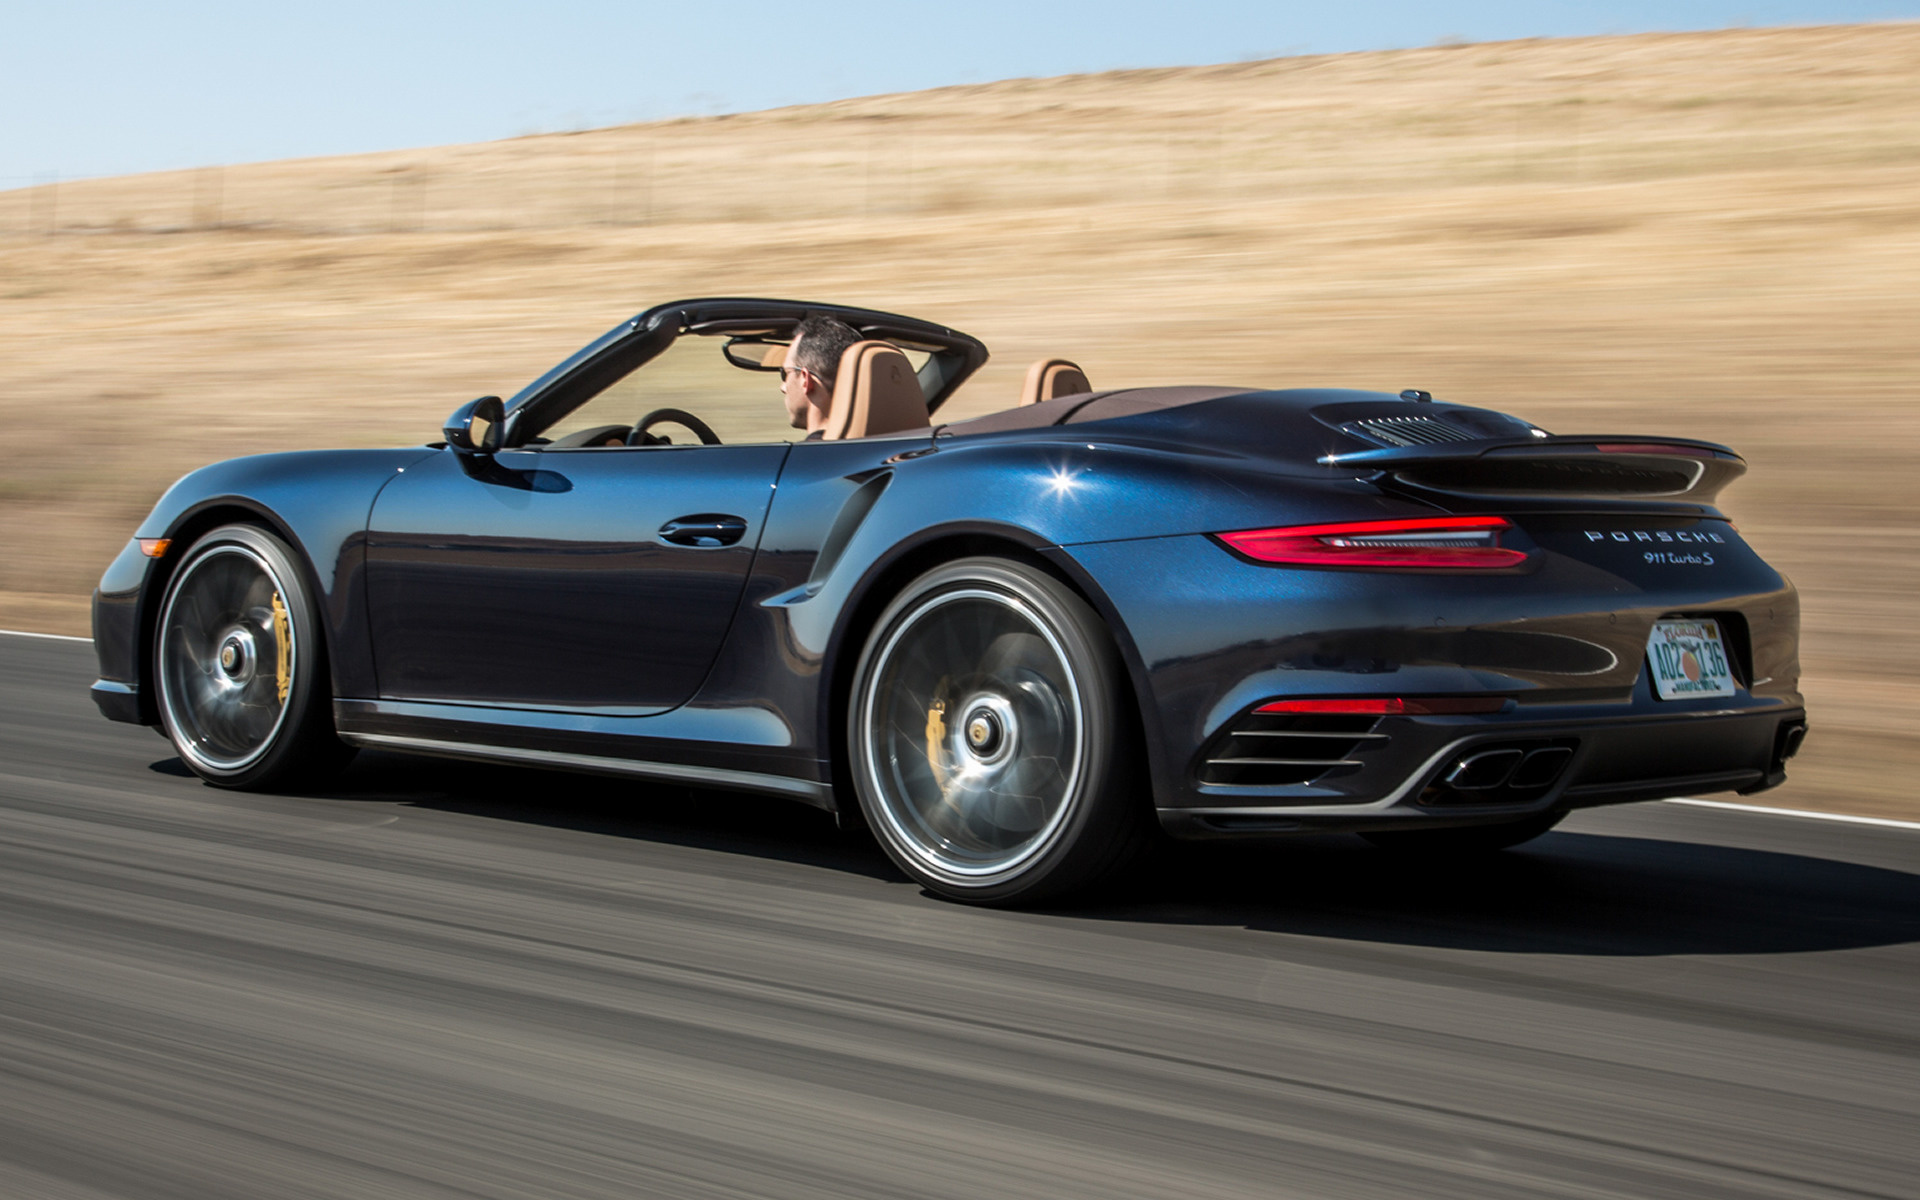 2017 Porsche 911 Turbo S Cabriolet (US) - Wallpapers and ...